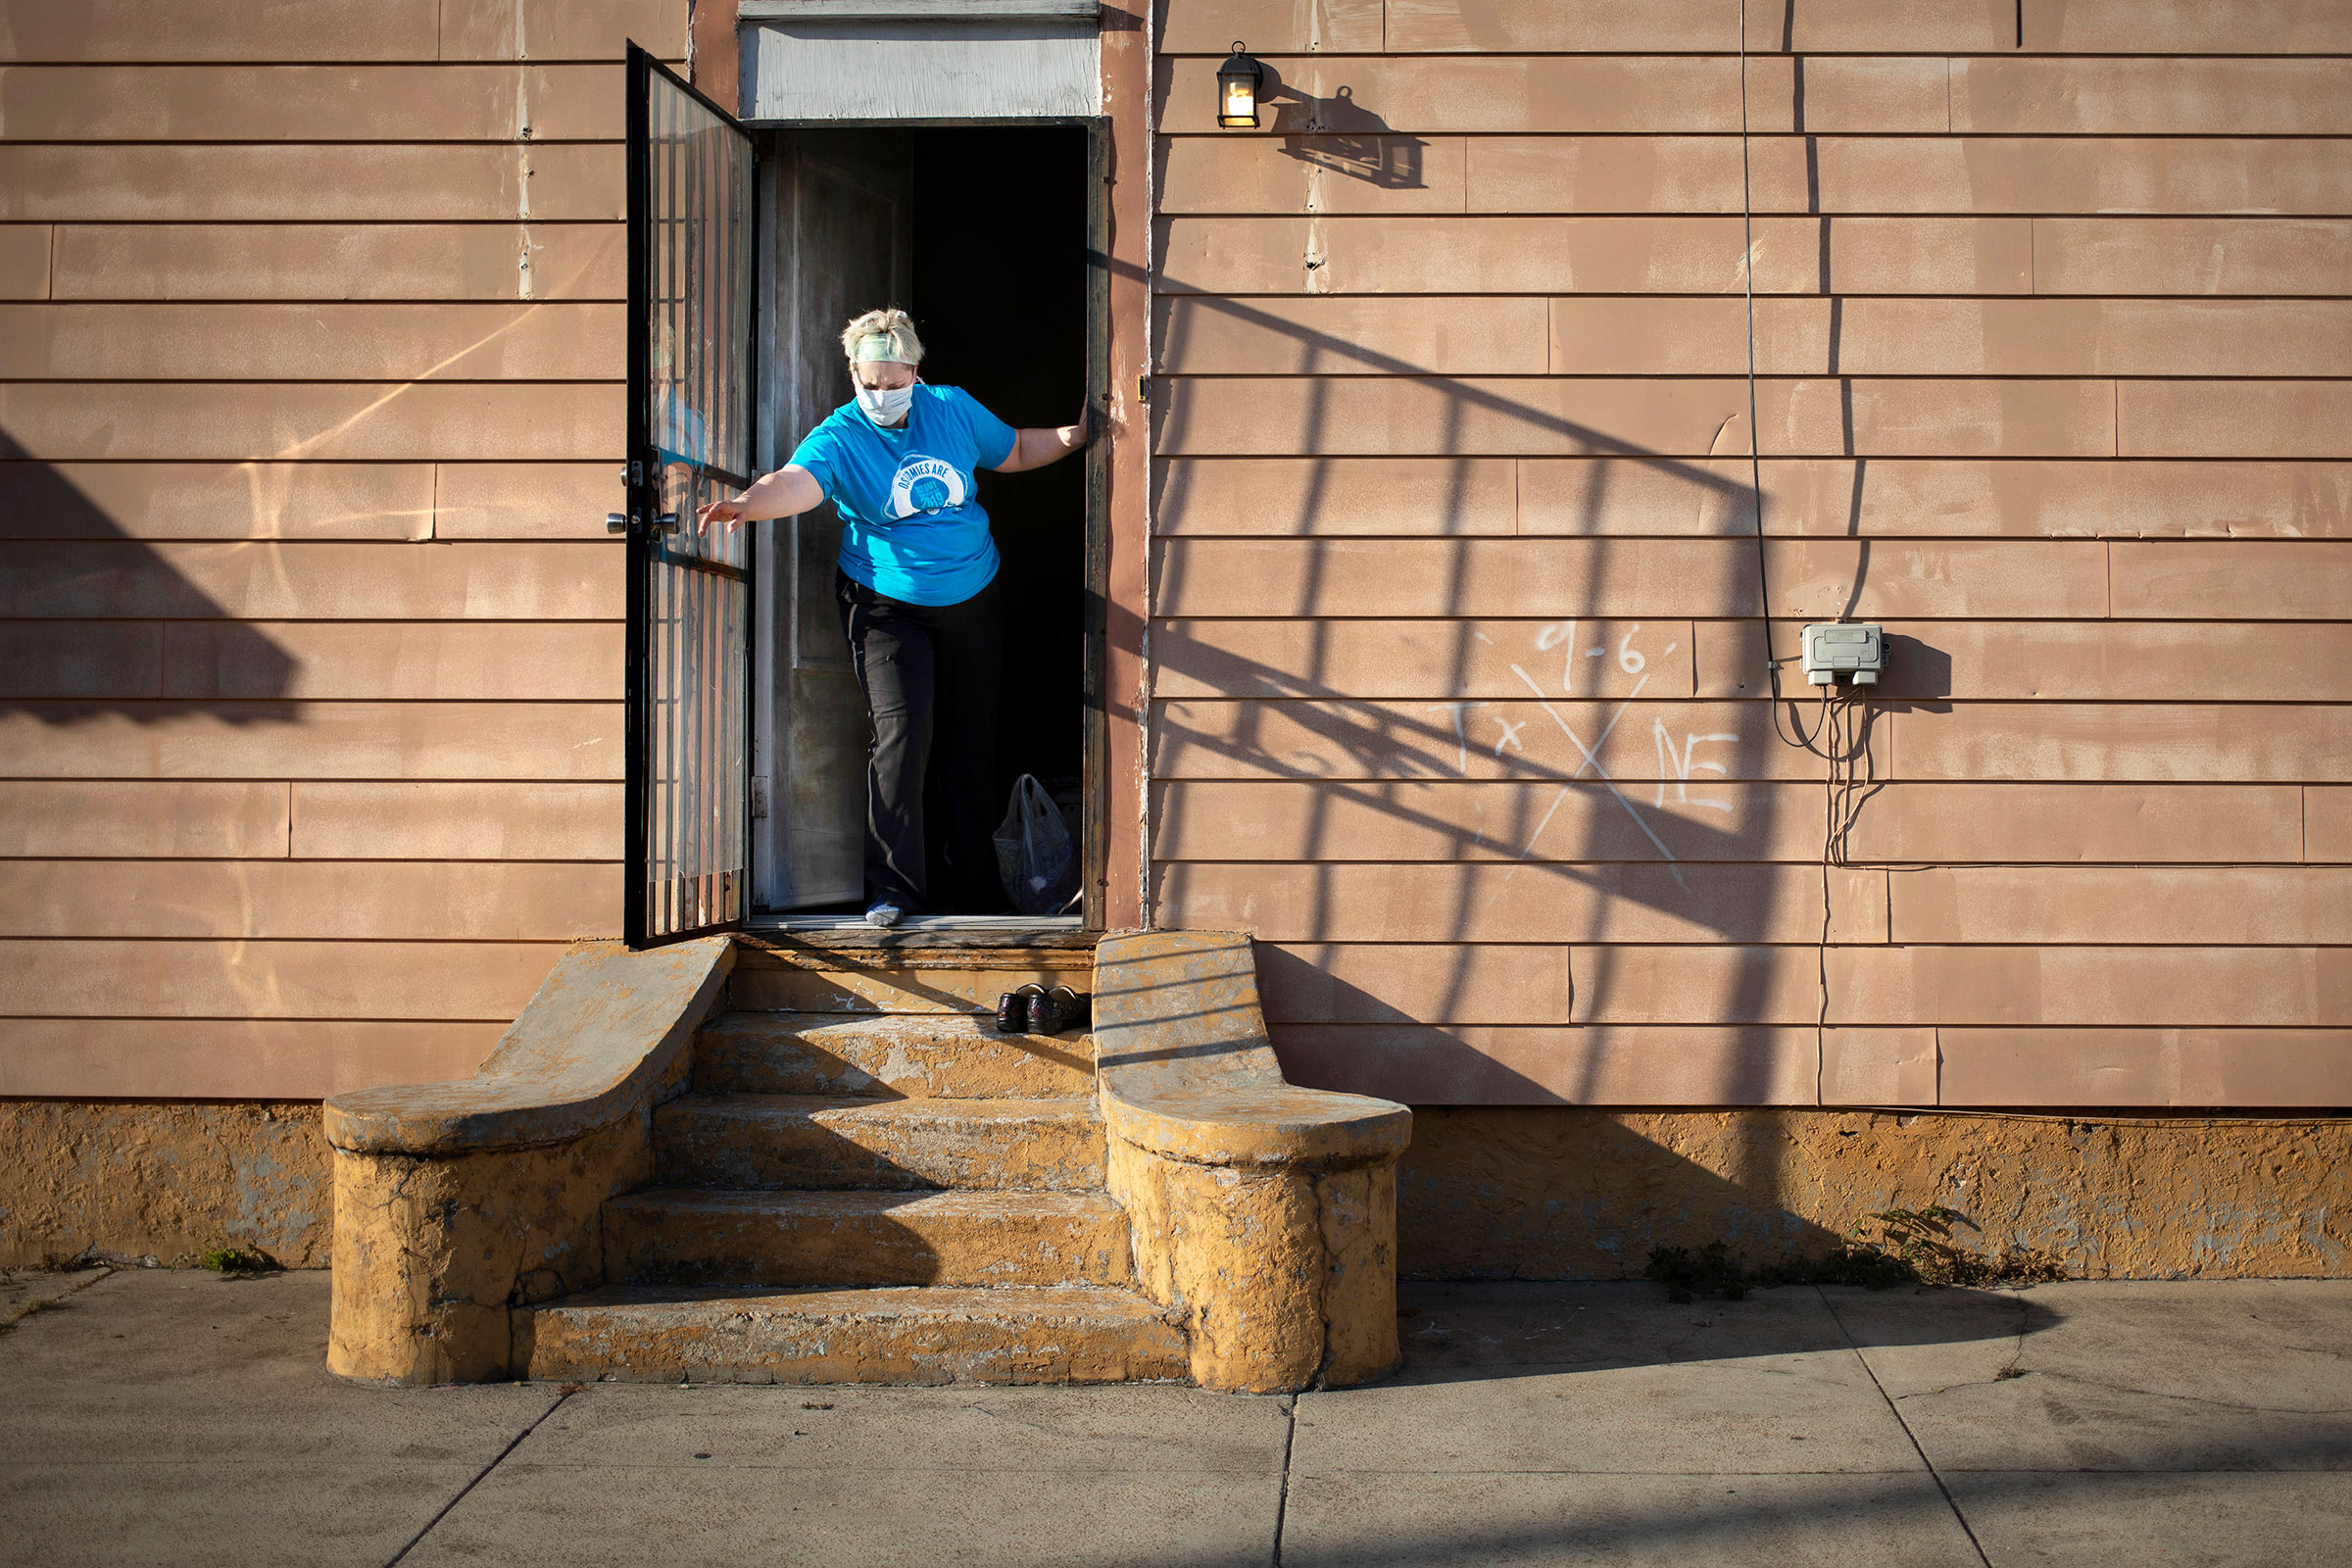 Laurie Halbrook leaves her shoes outside and closes the side door at her house after a shift working as a nurse on April 3, 2020.